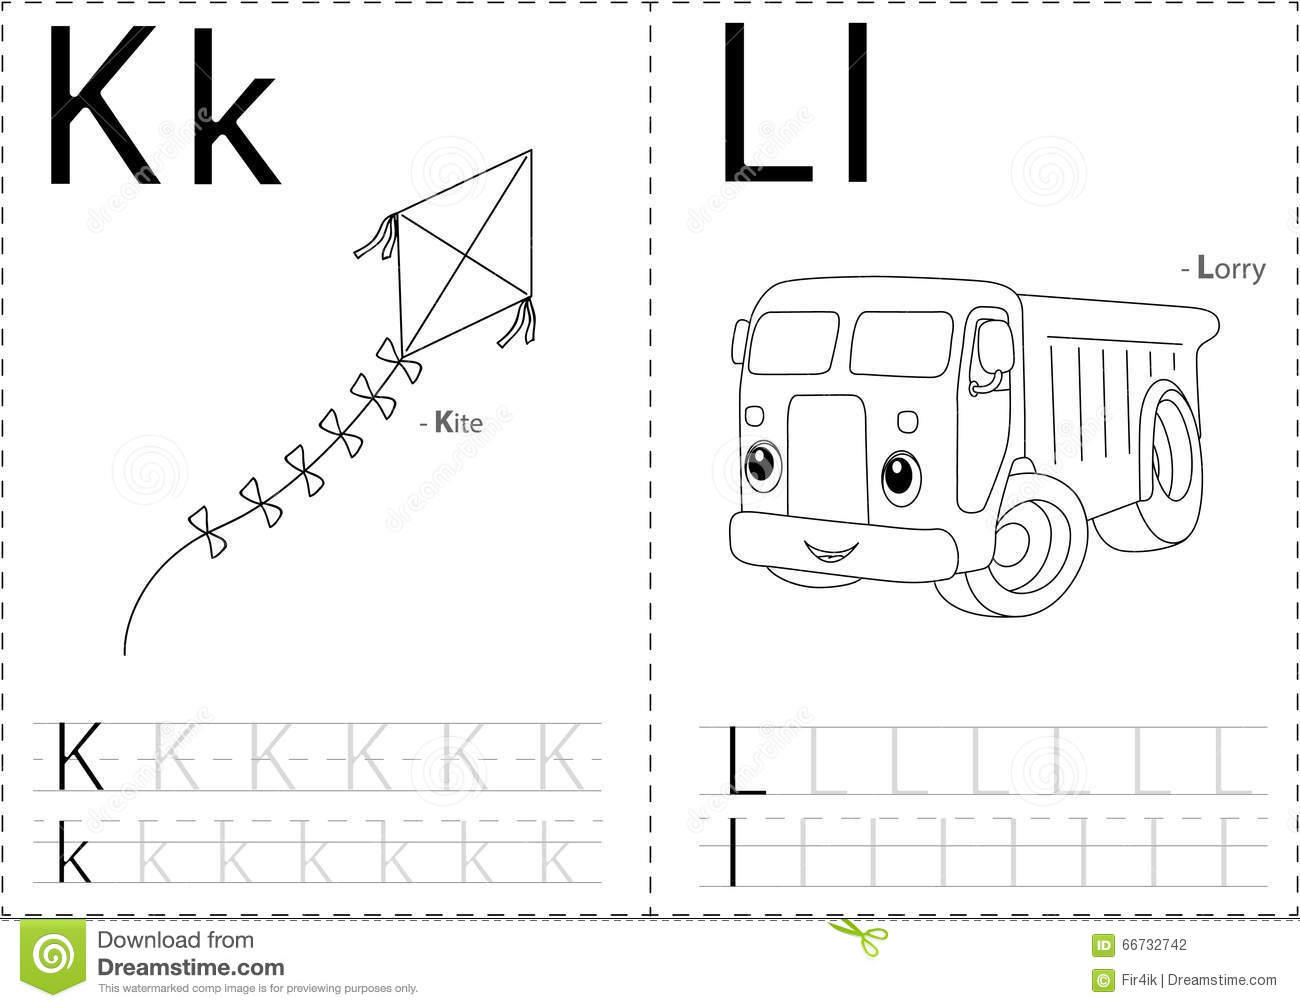 Kite Printable Worksheet